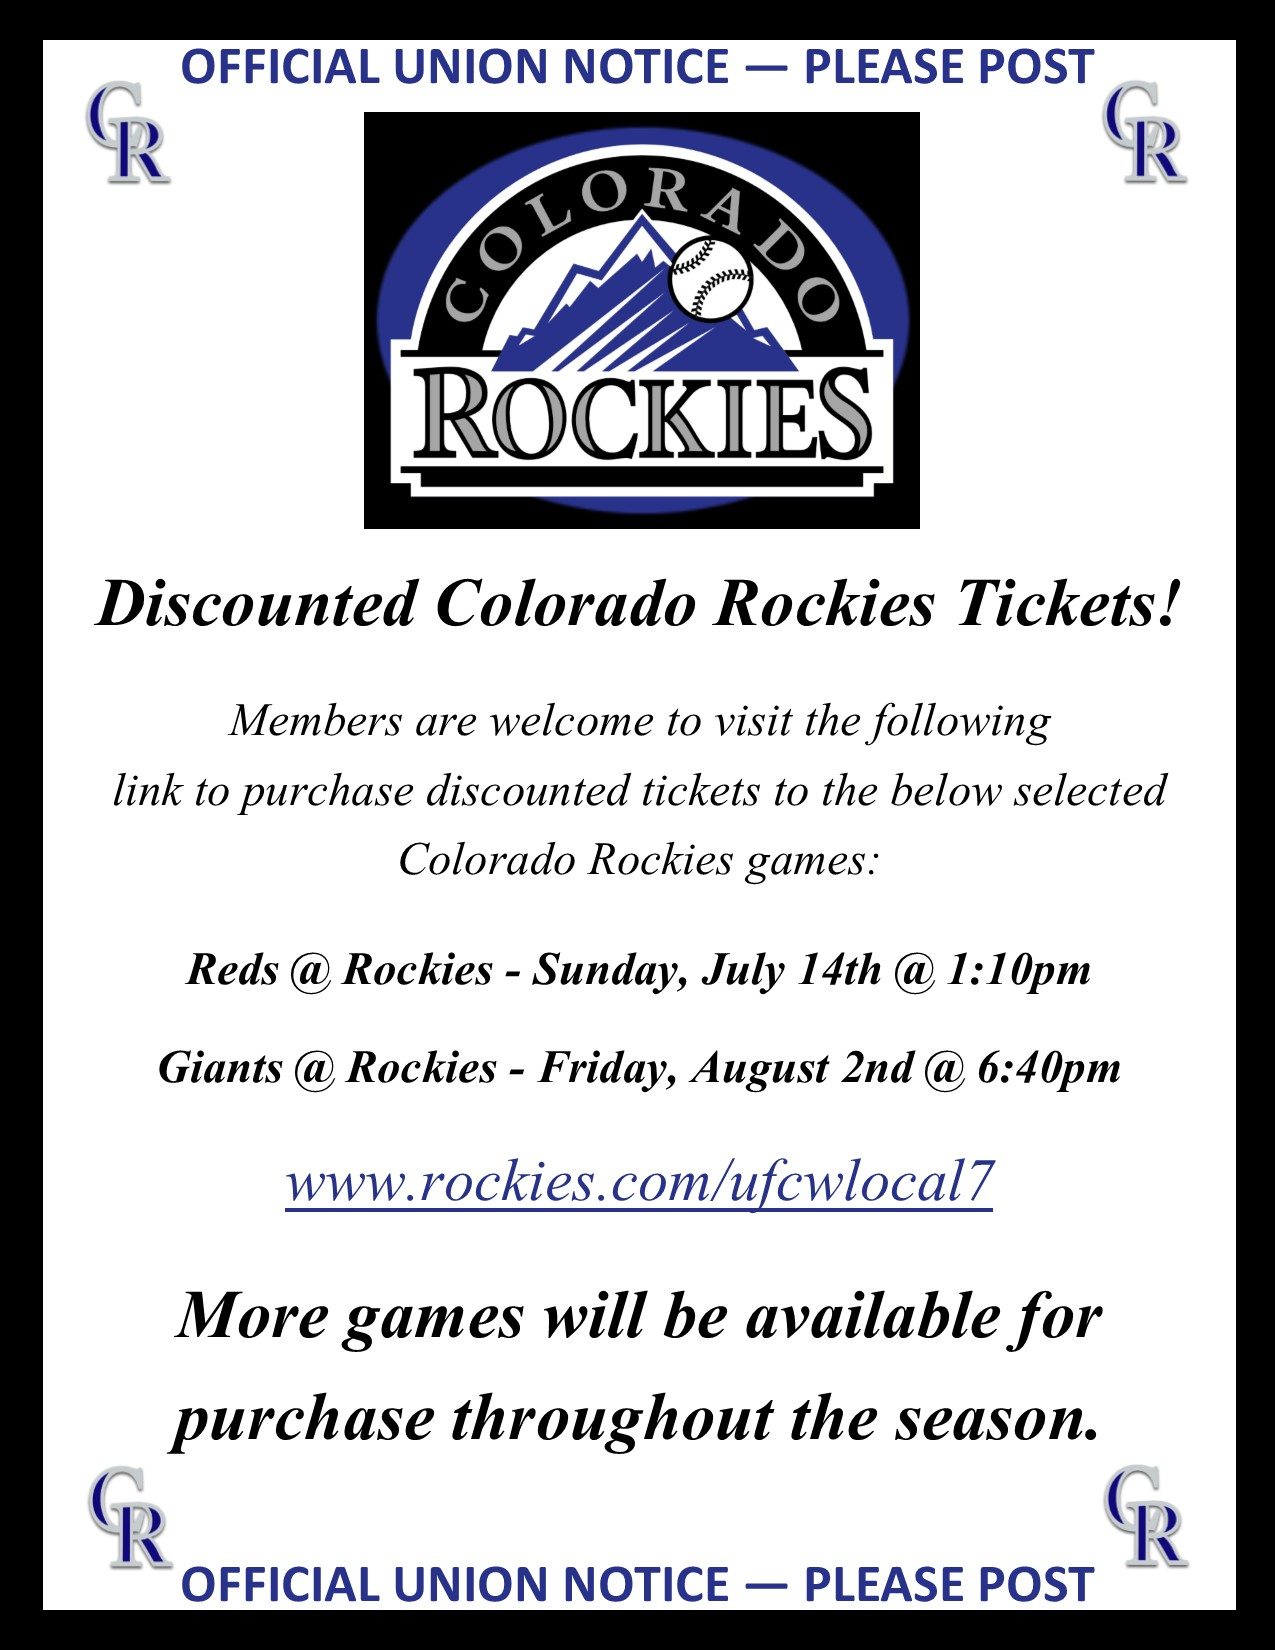 Discounted Rockies Tickets!